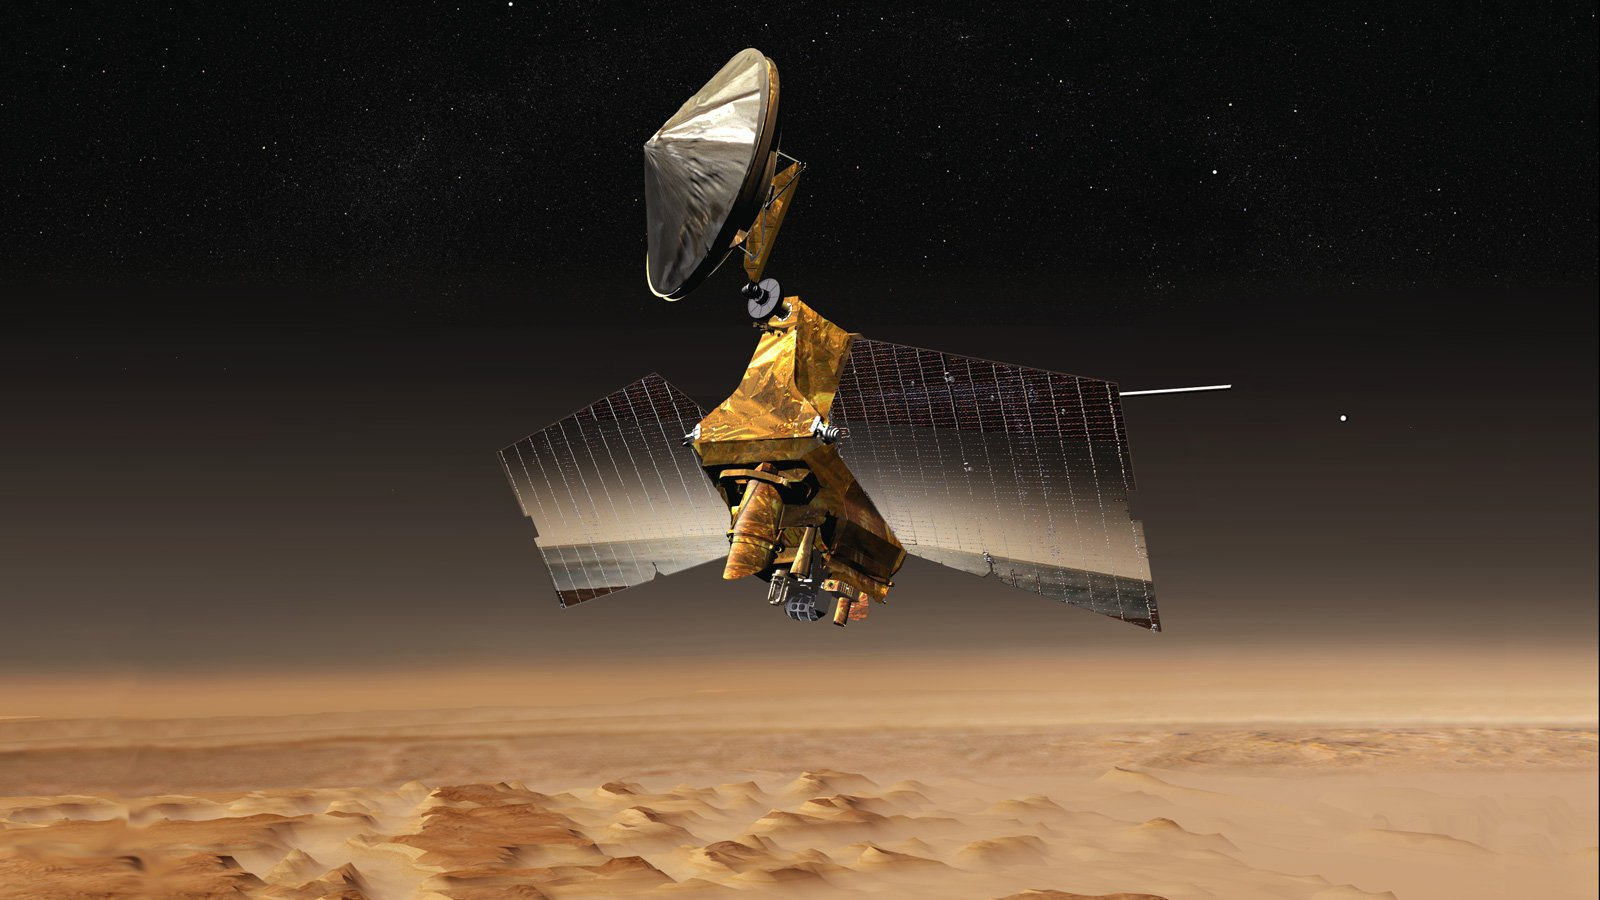 NASA's Mars Reconnaissance Orbiter Undergoes Memory Update - technology